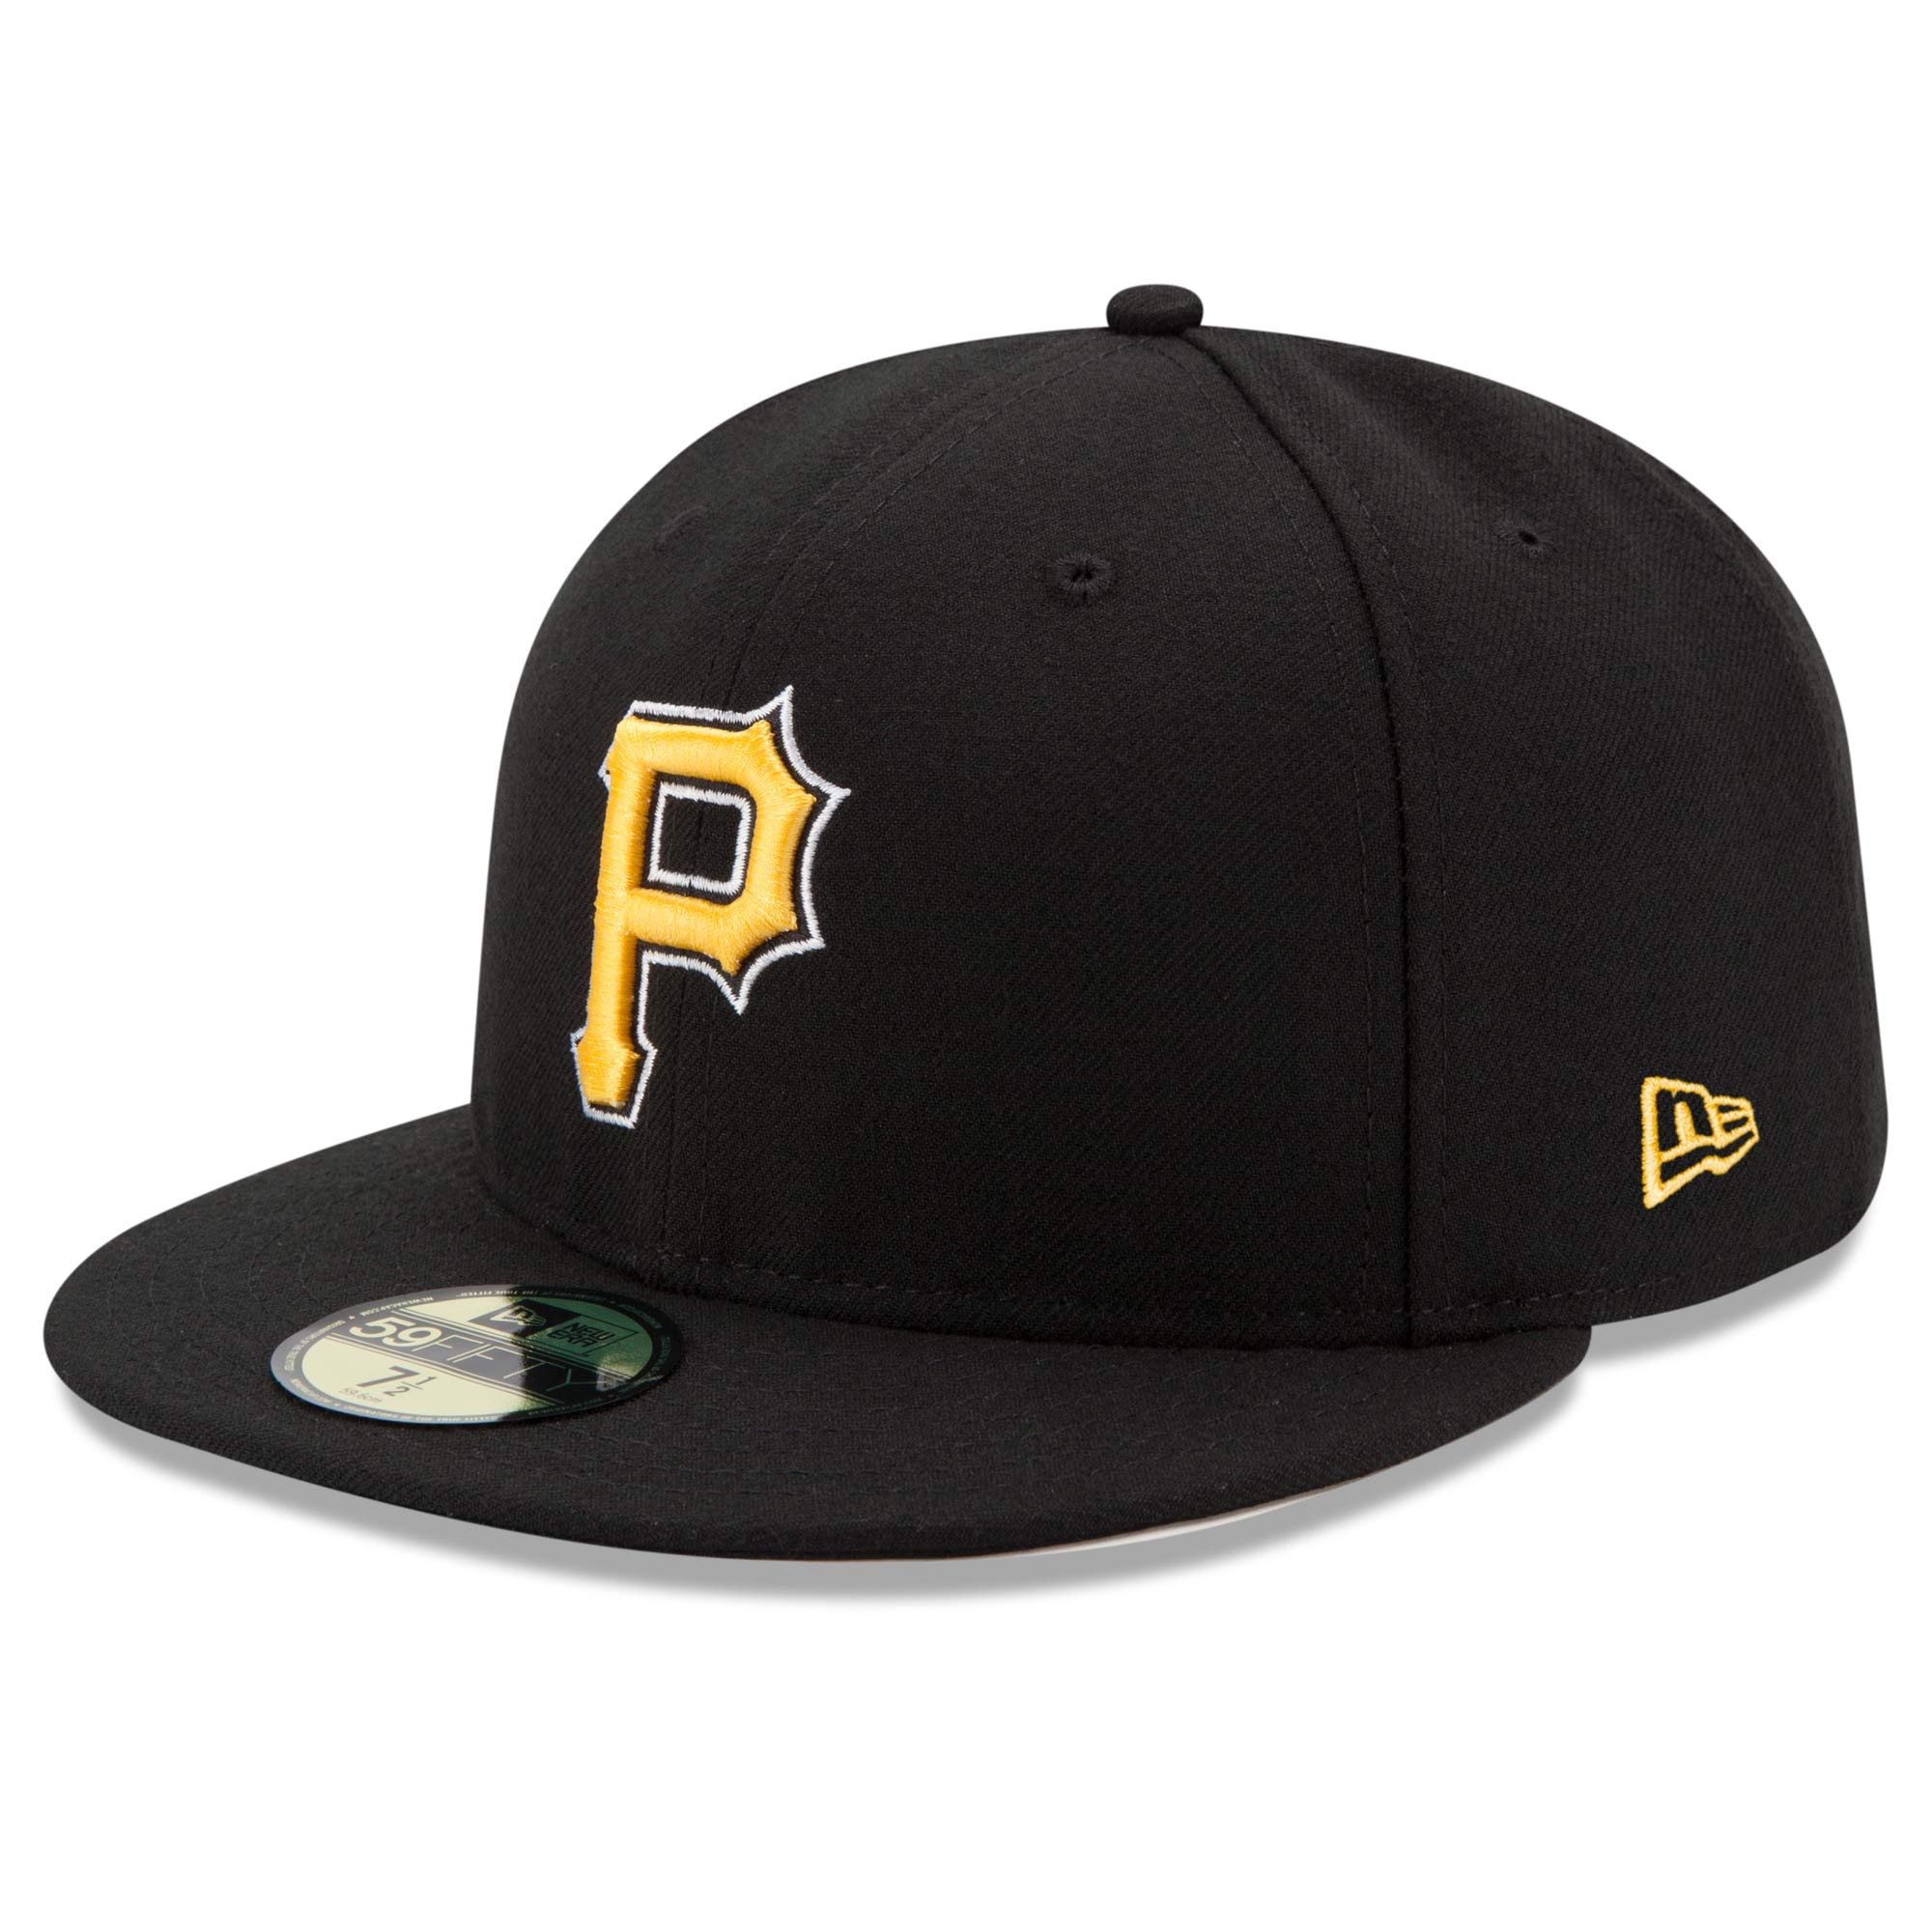 Pittsburgh Pirates New Era Alternate Authentic Collection On-Field 59FIFTY Fitted Hat - Black